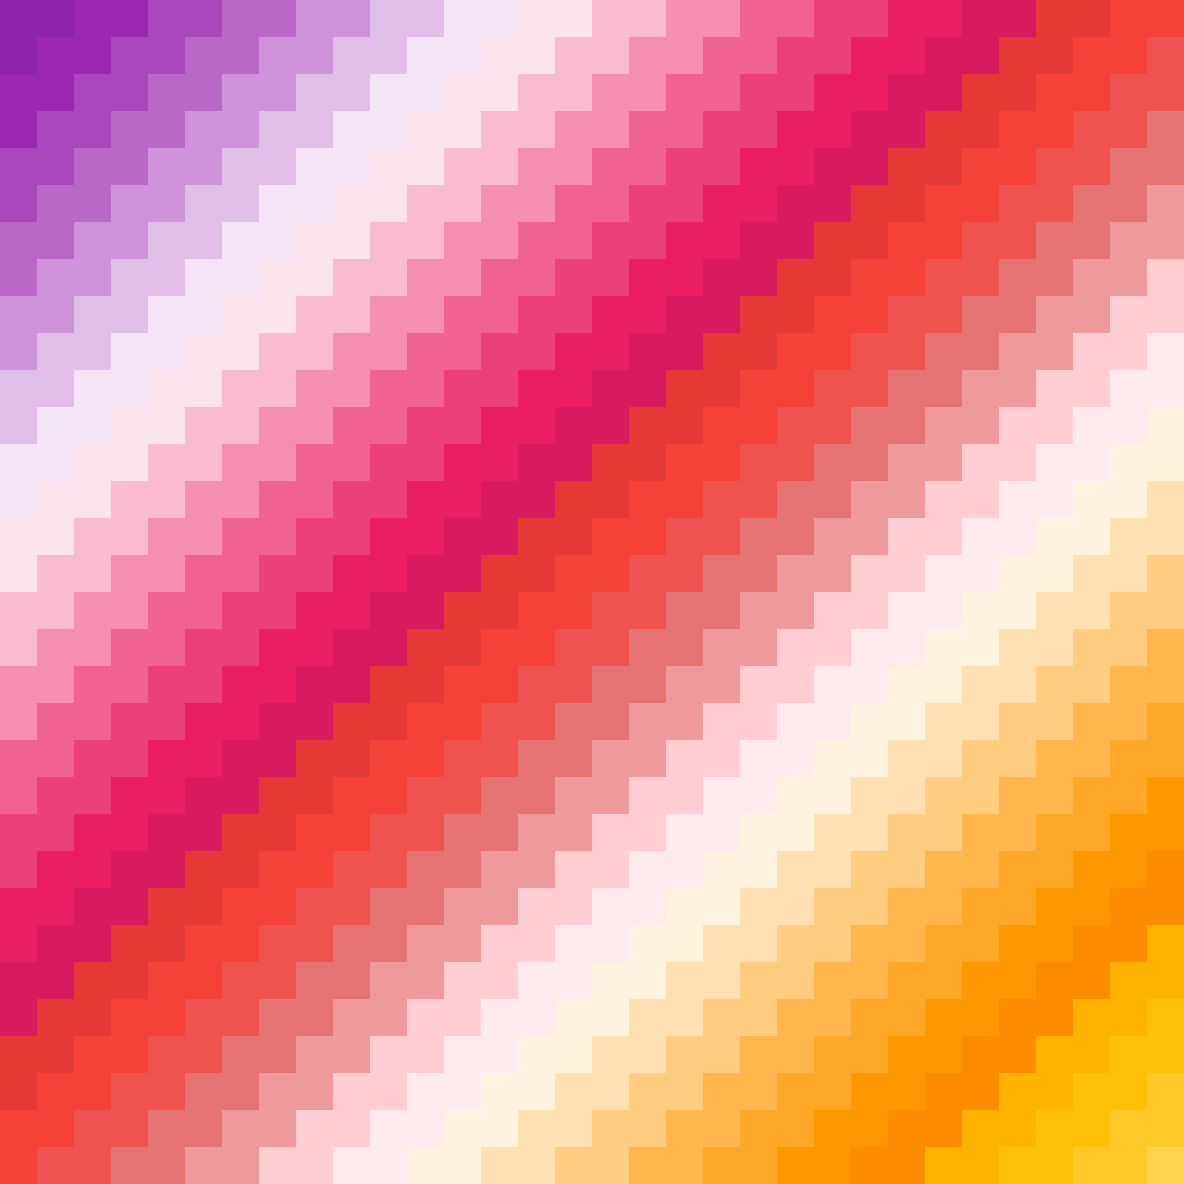 gradient by 18moonlights